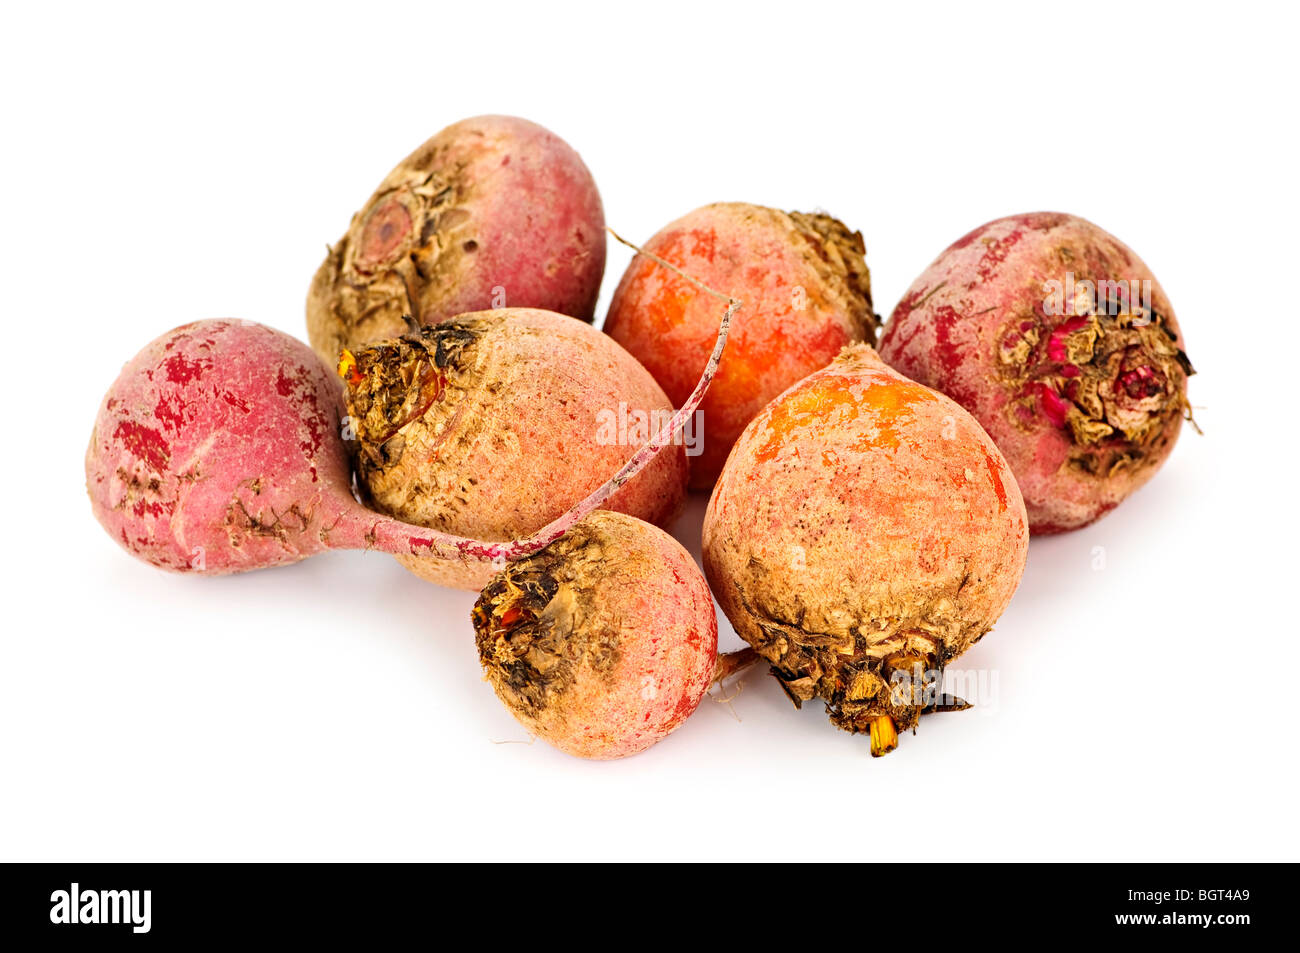 Close up of whole red and golden beets isolated on white - Stock Image